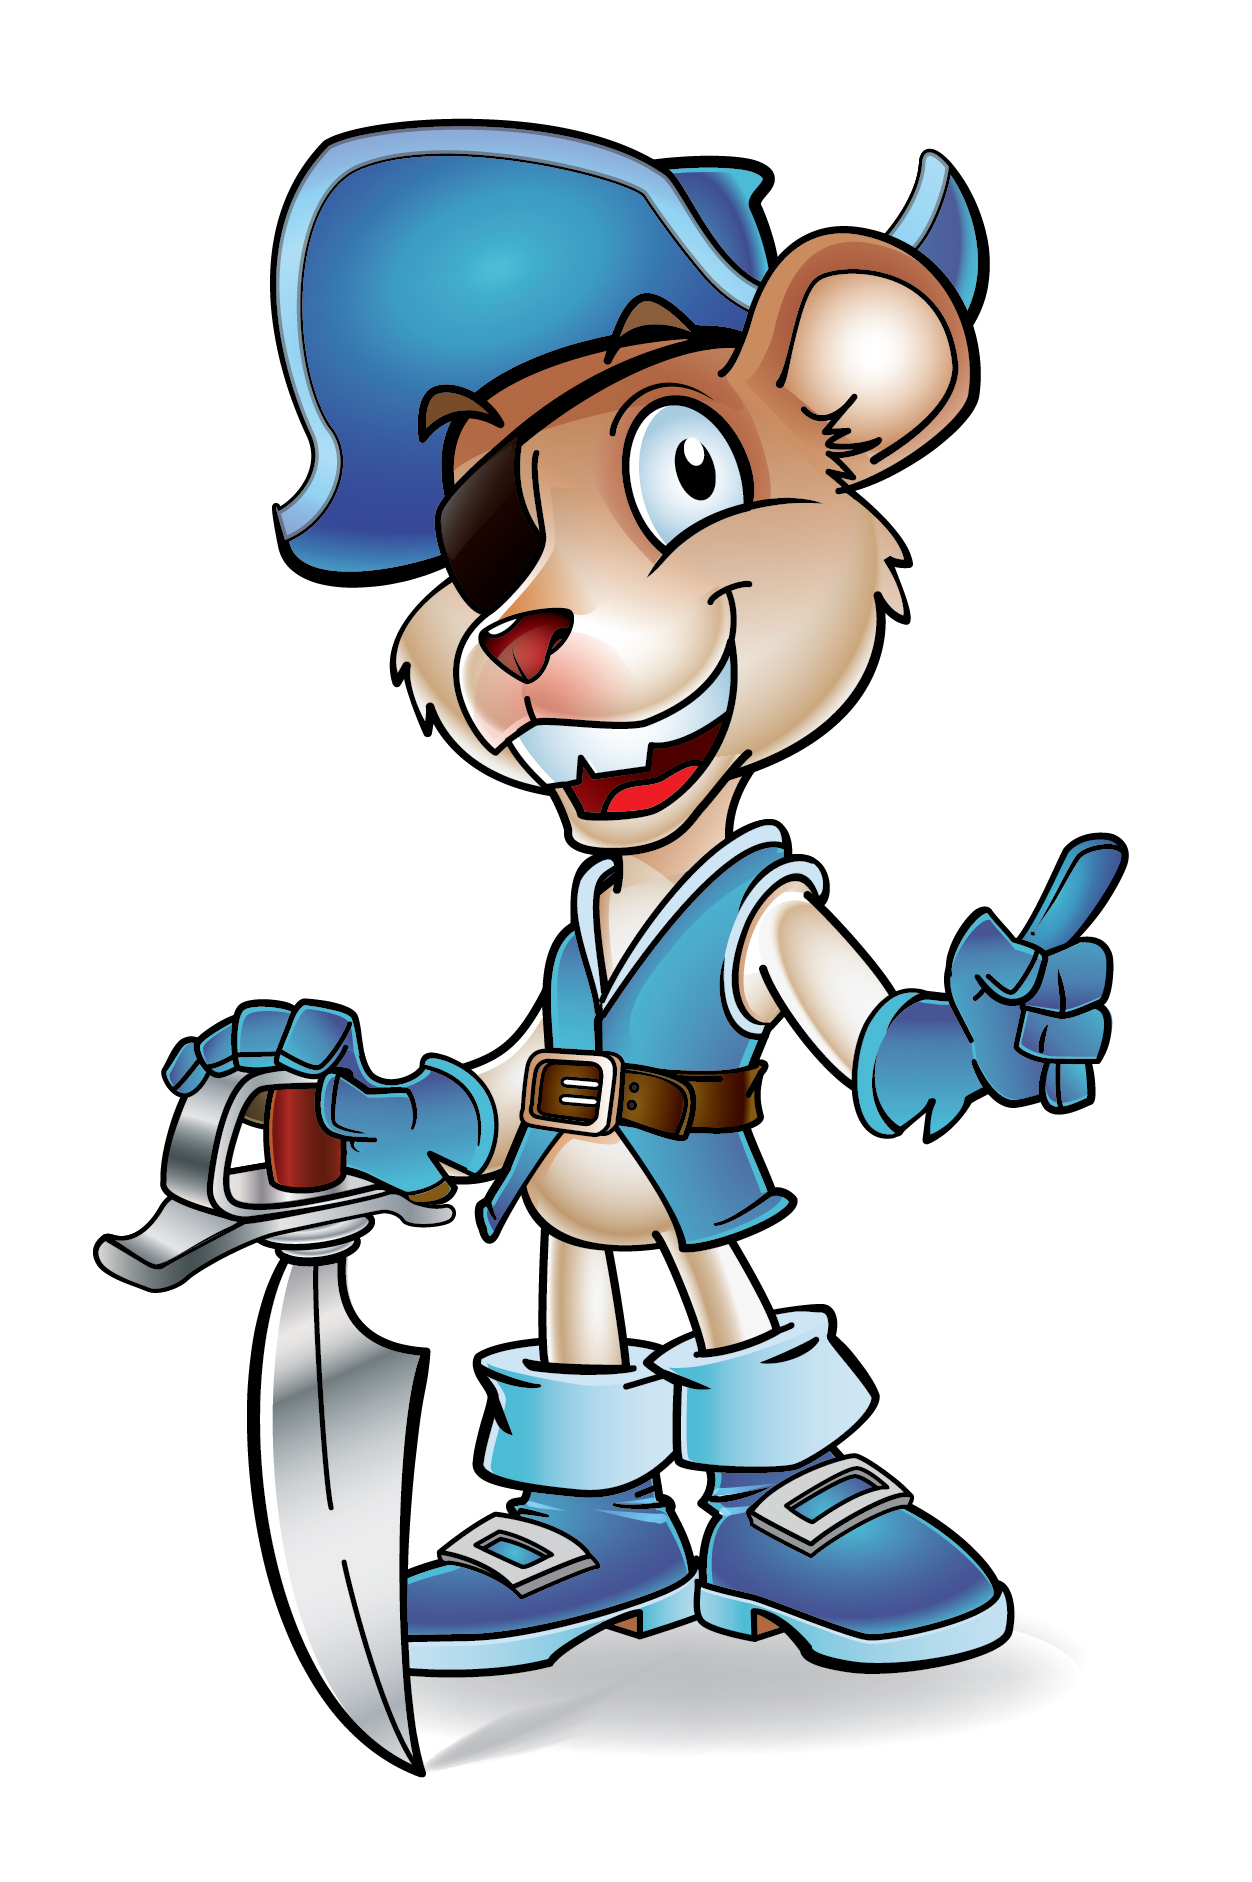 Captain Pirate Mouse Mascot